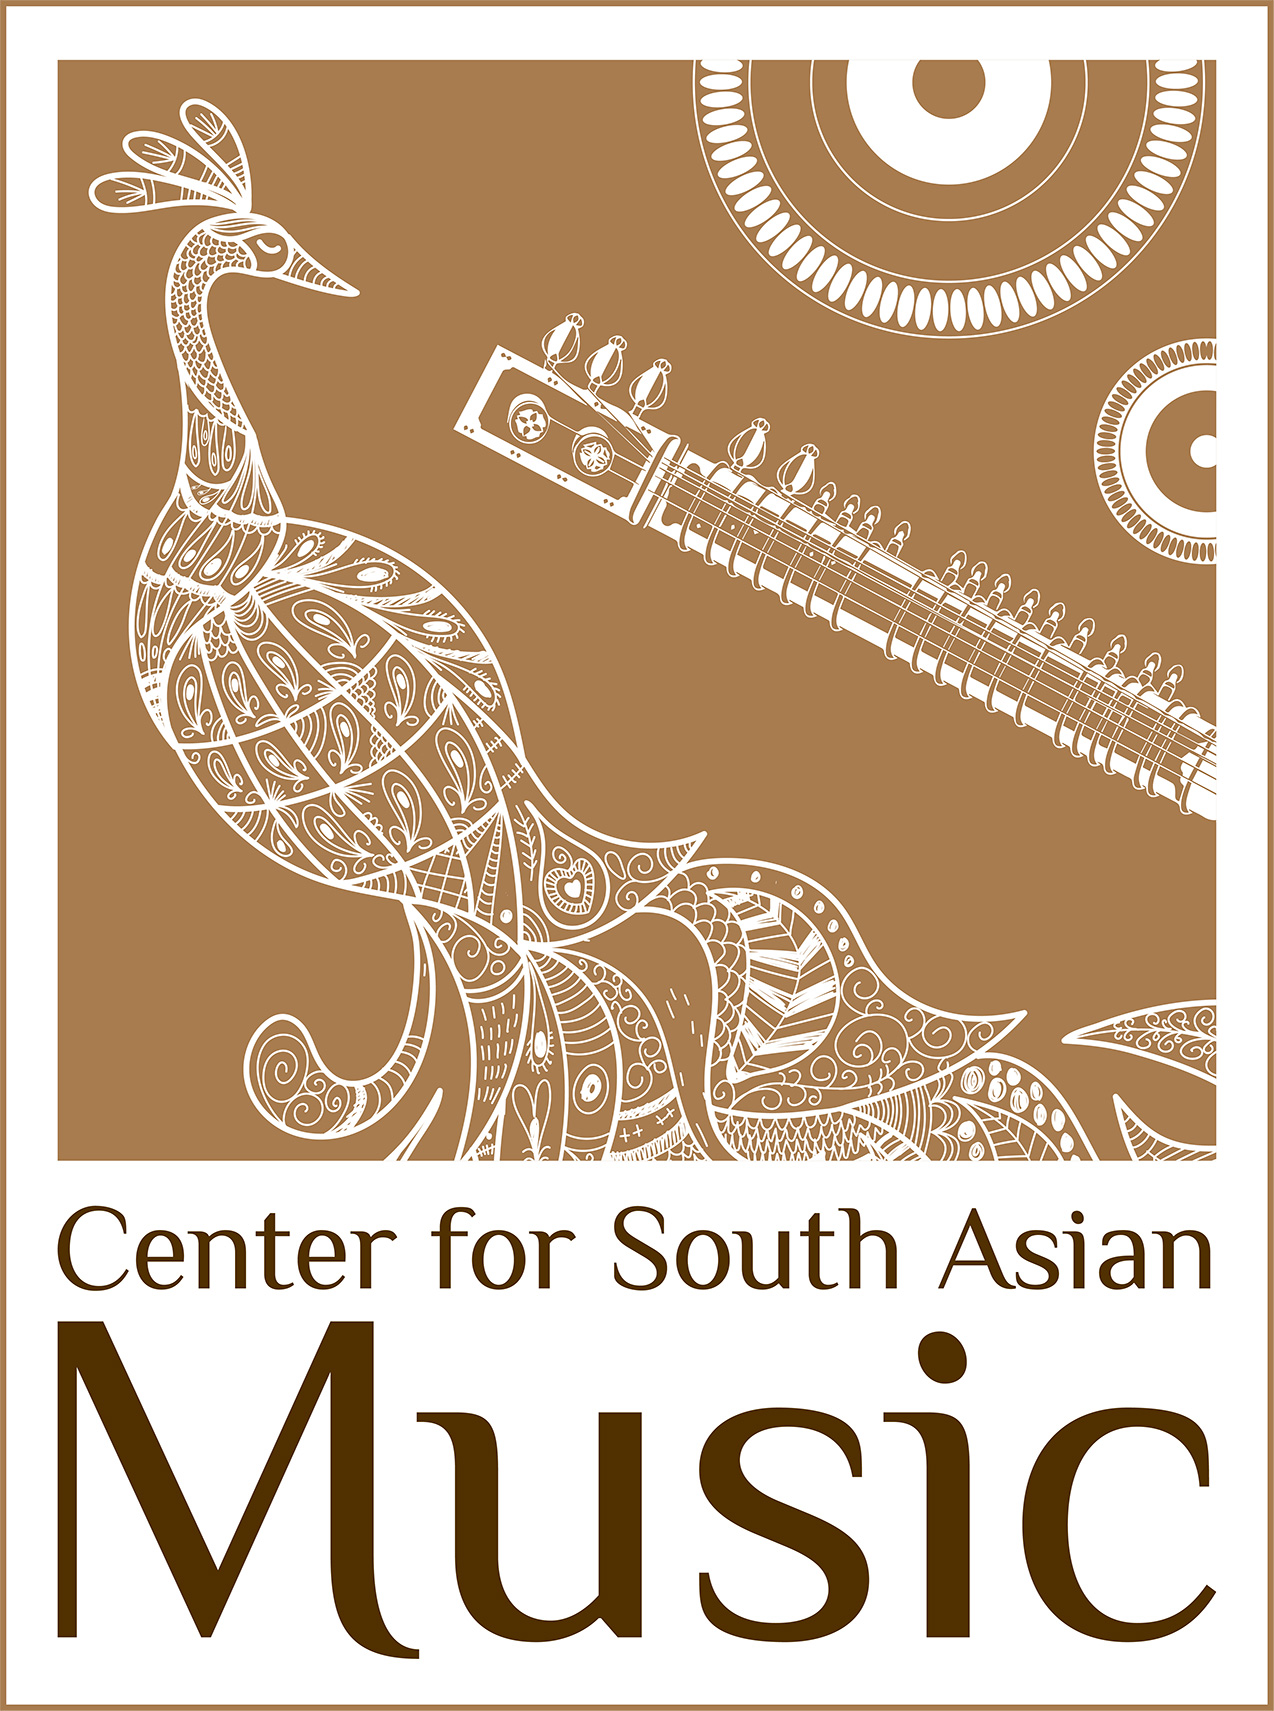 Center for South Asian Music